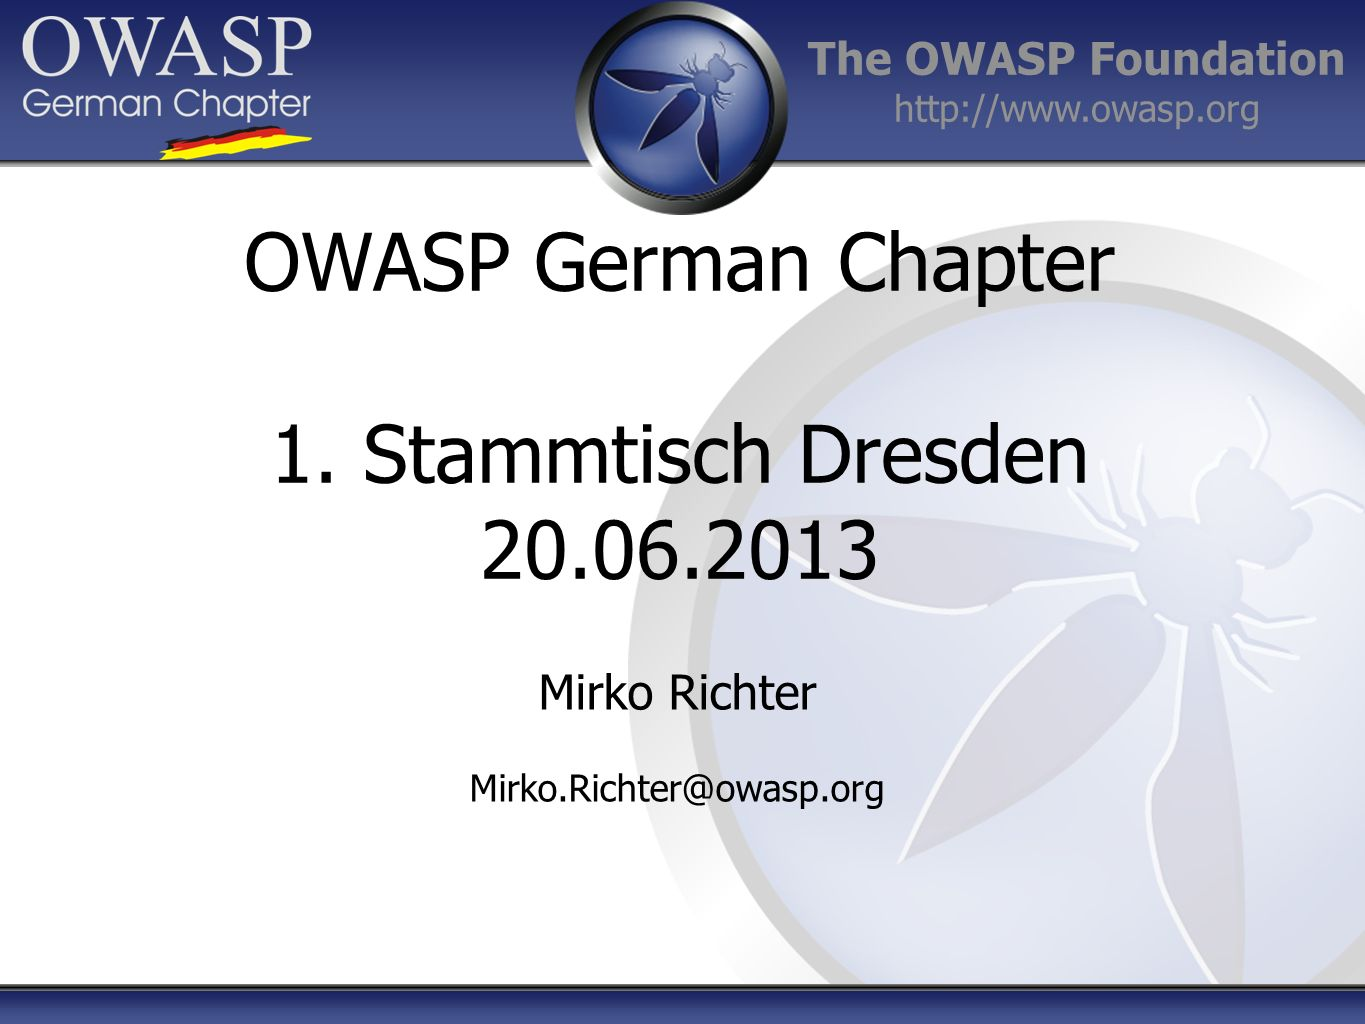 The OWASP Foundation http://www.owasp.org Mirko Richter Mirko.Richter@owasp.org OWASP German Chapter 1. Stammtisch Dresden 20.06.2013